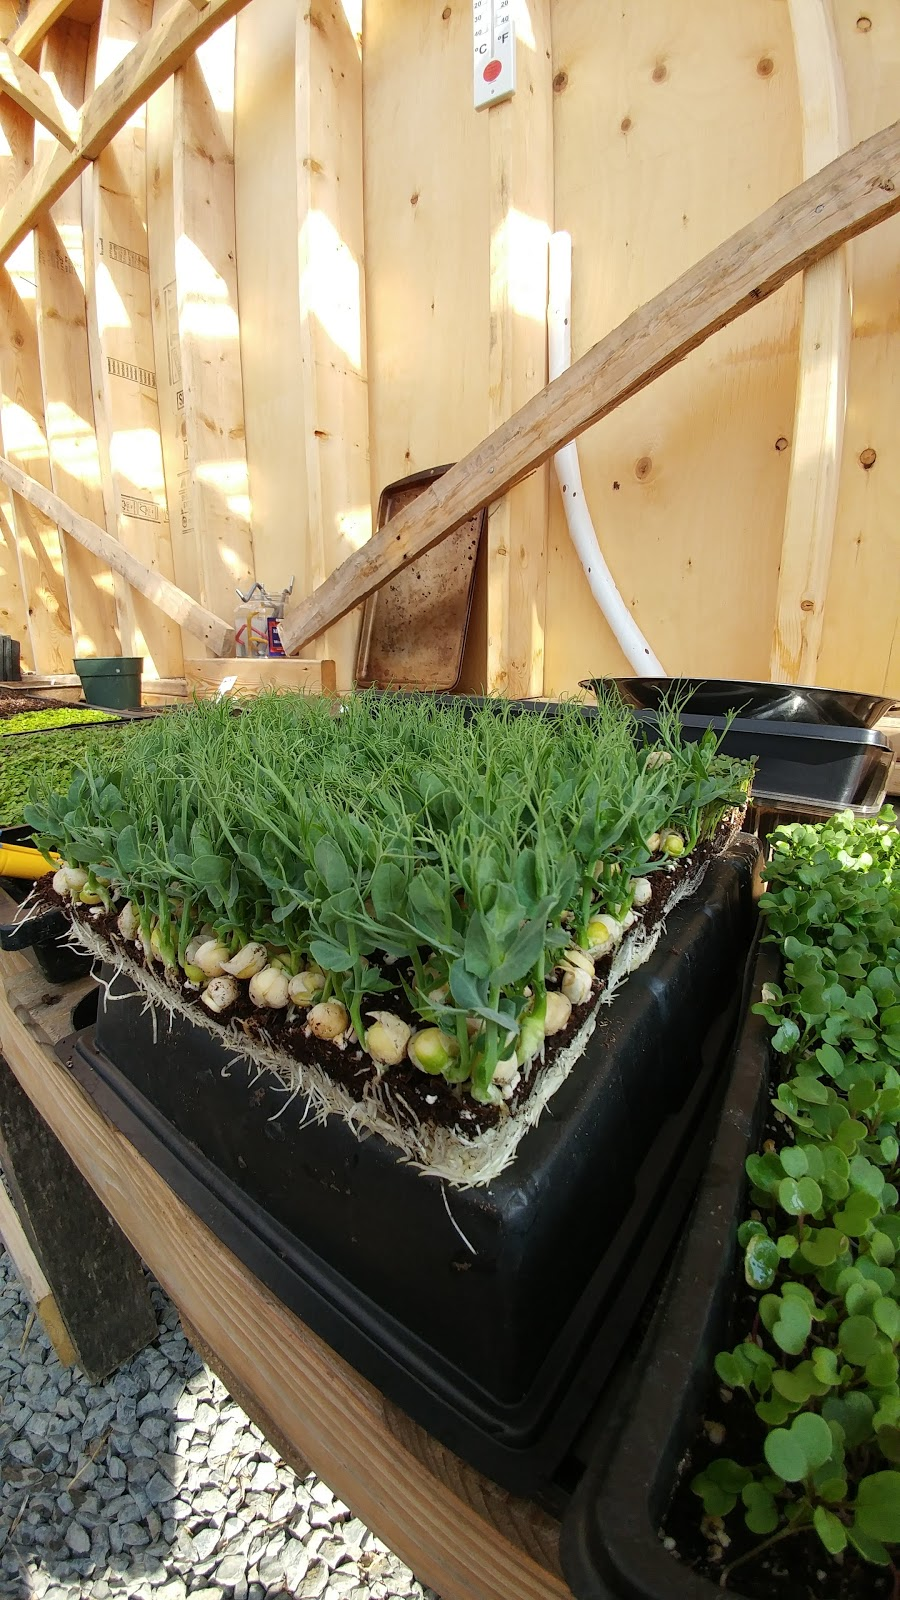 Edible Forest Farm | store | 3410 Greenfield Rd, South Frontenac, ON K0H, Canada